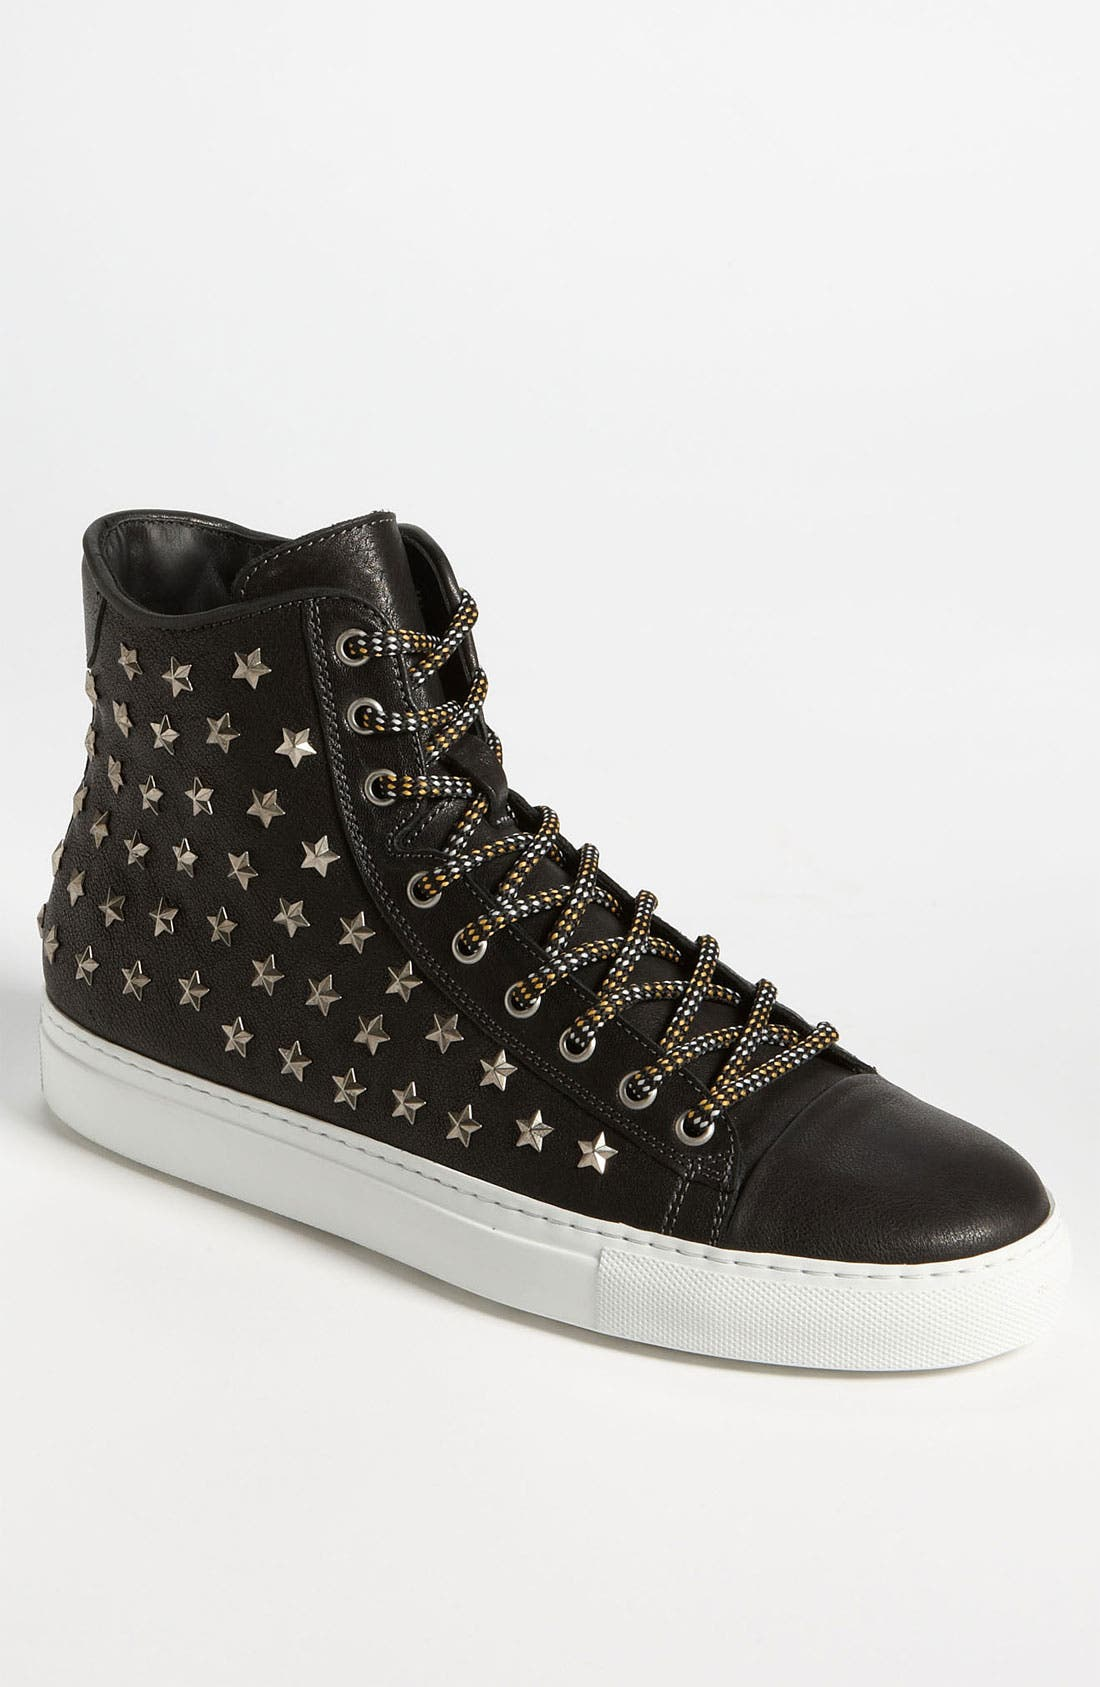 Alternate Image 1 Selected - Dsquared2 Star Stud Sneaker